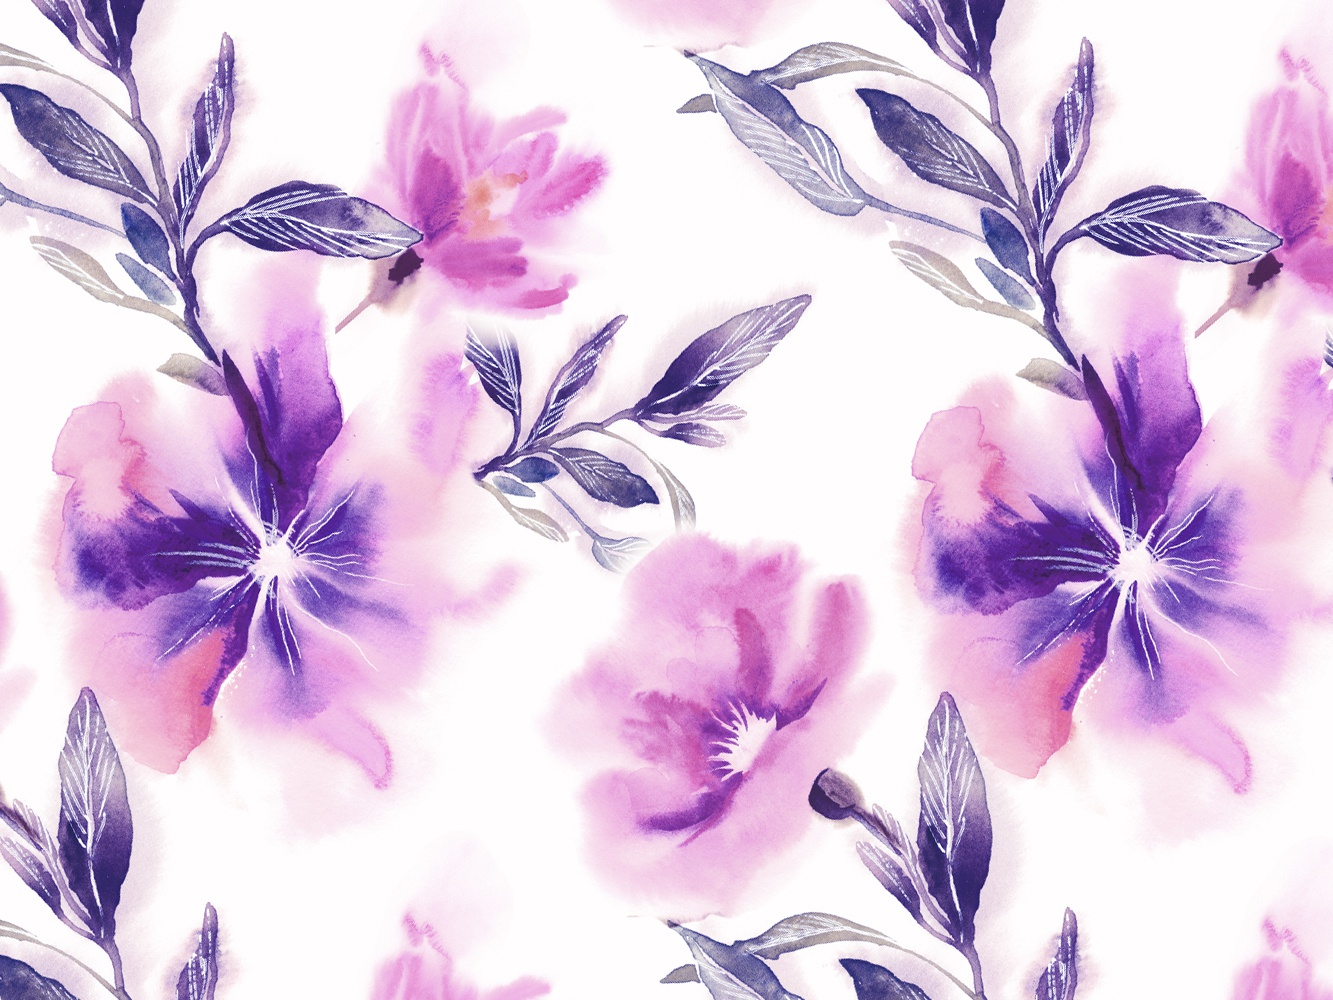 Watercolor Floral Seamless Pattern By Marina Grau On Dribbble